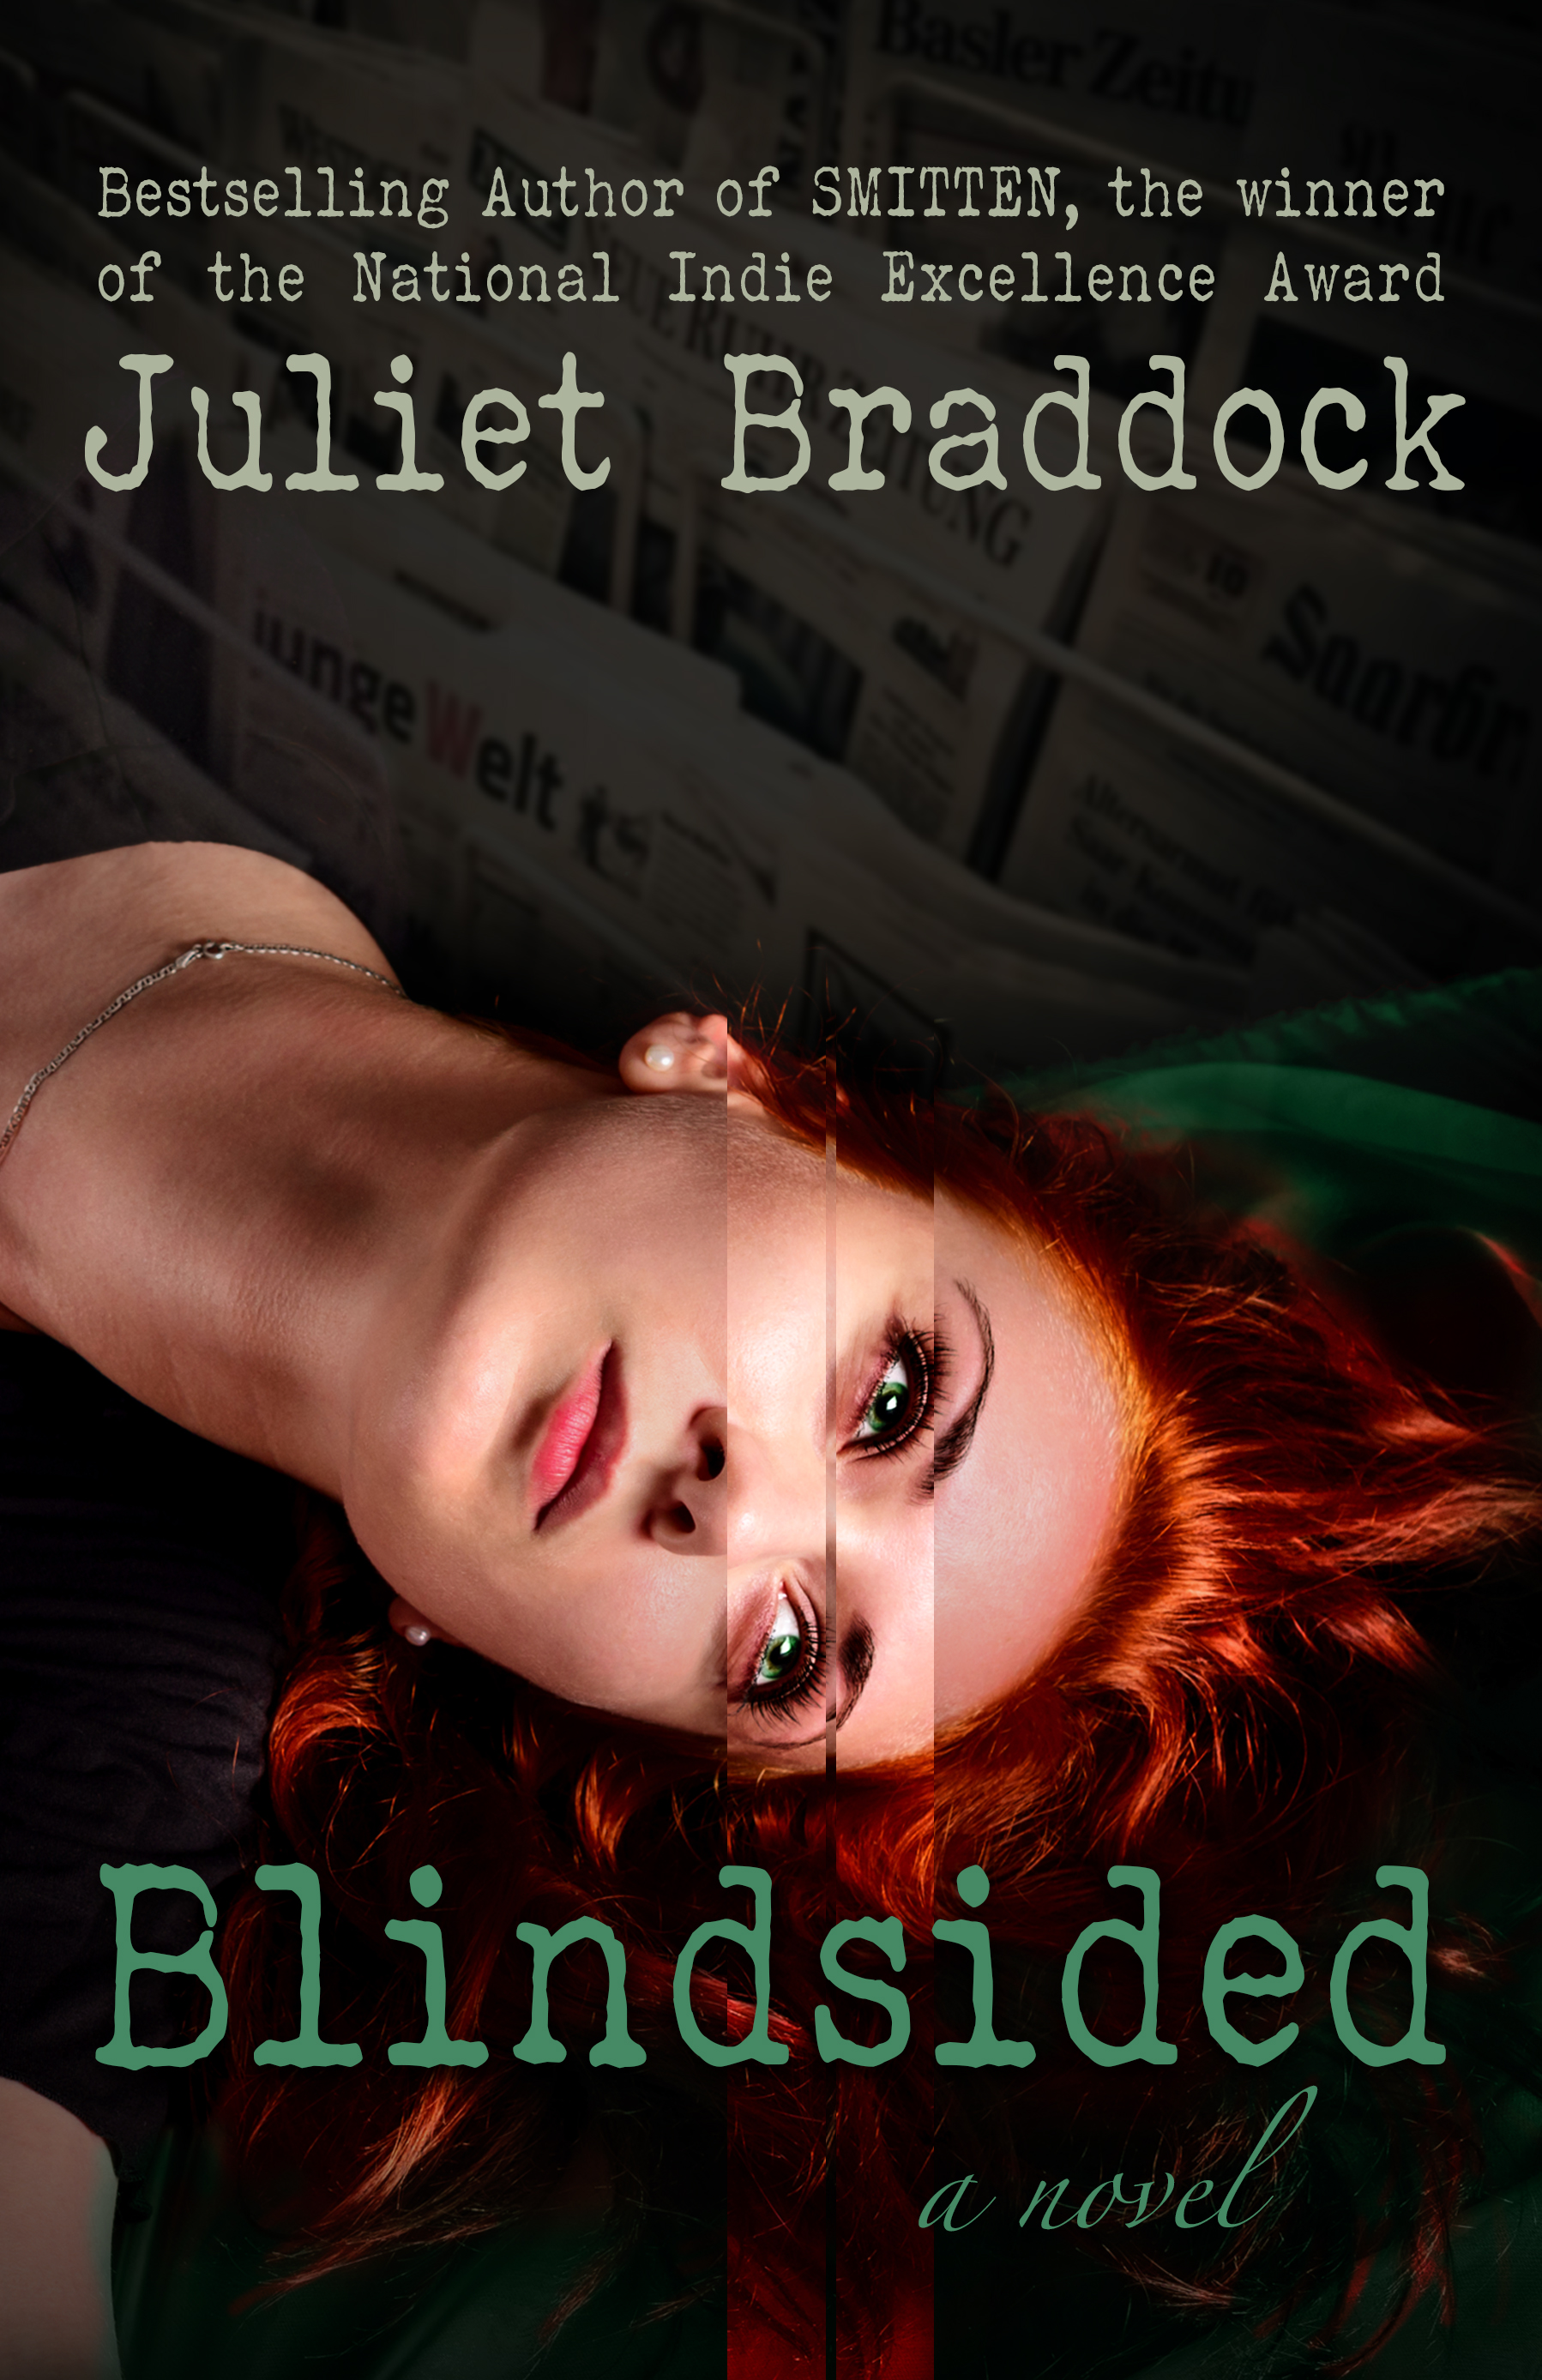 blindsided_front_cover_07_19